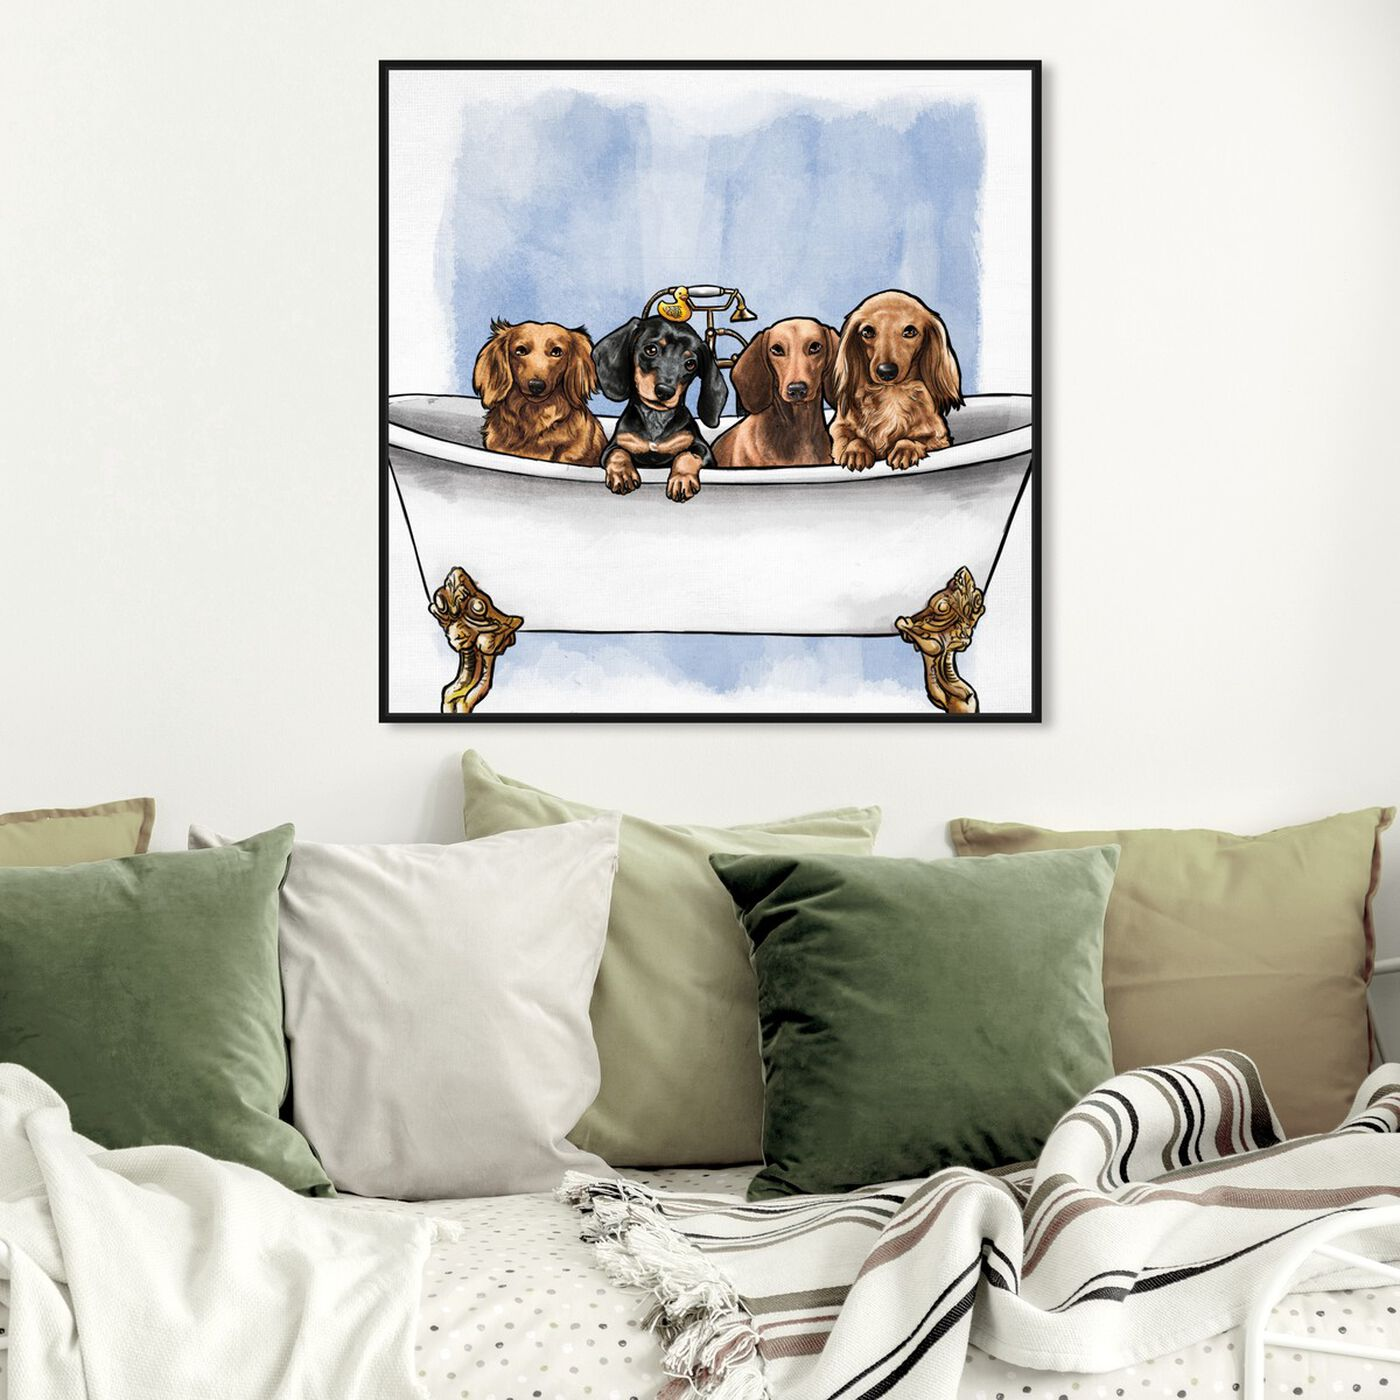 Hanging view of Dachs in The Tub featuring animals and dogs and puppies art.